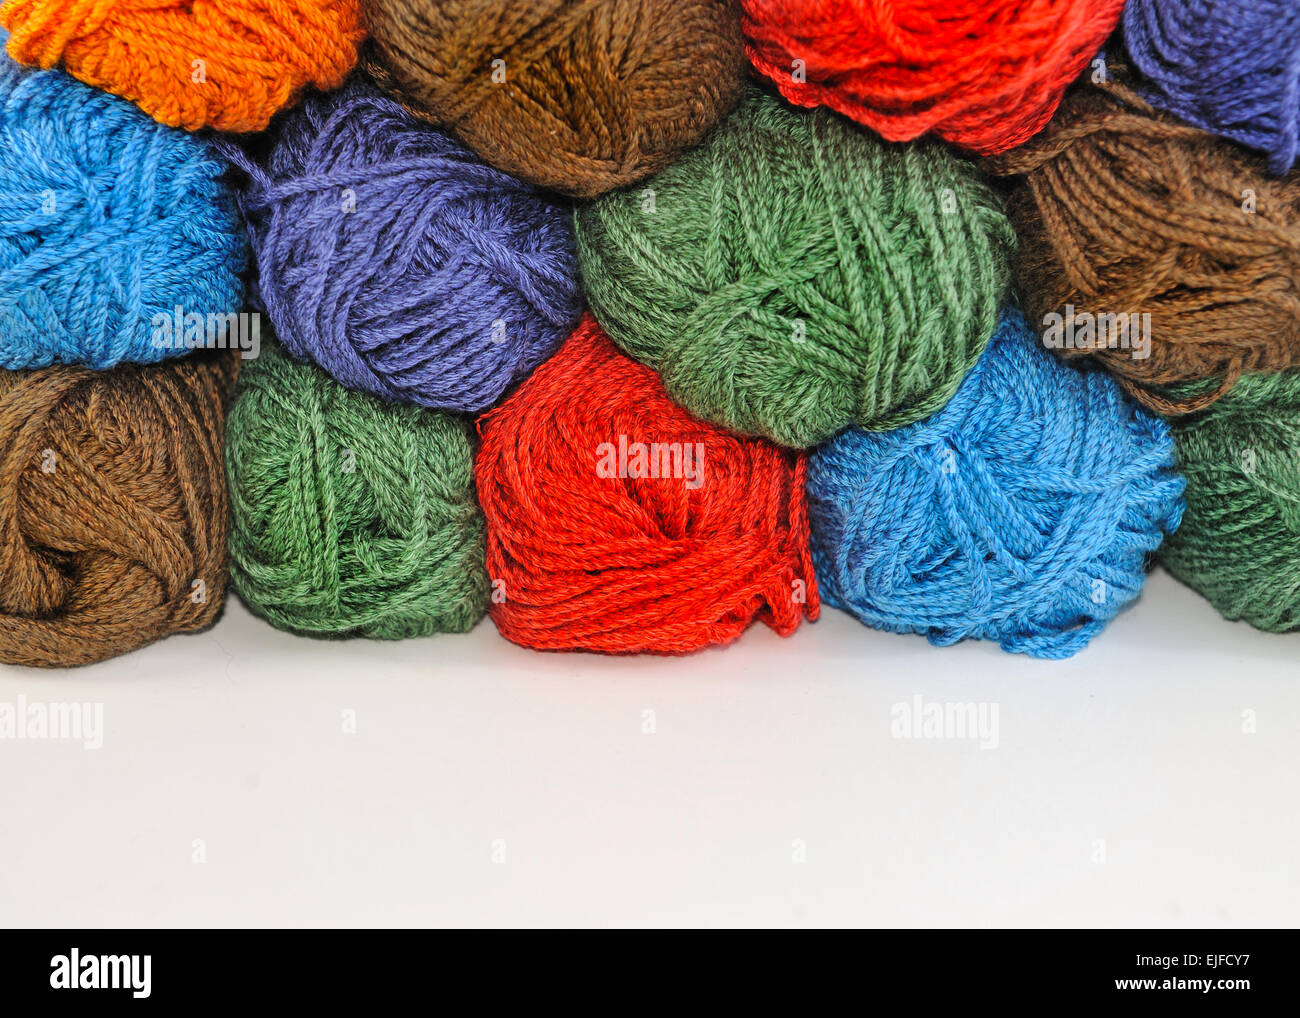 Multi-colored skeins of yarn for knitting stacked one upon the other. - Stock Image